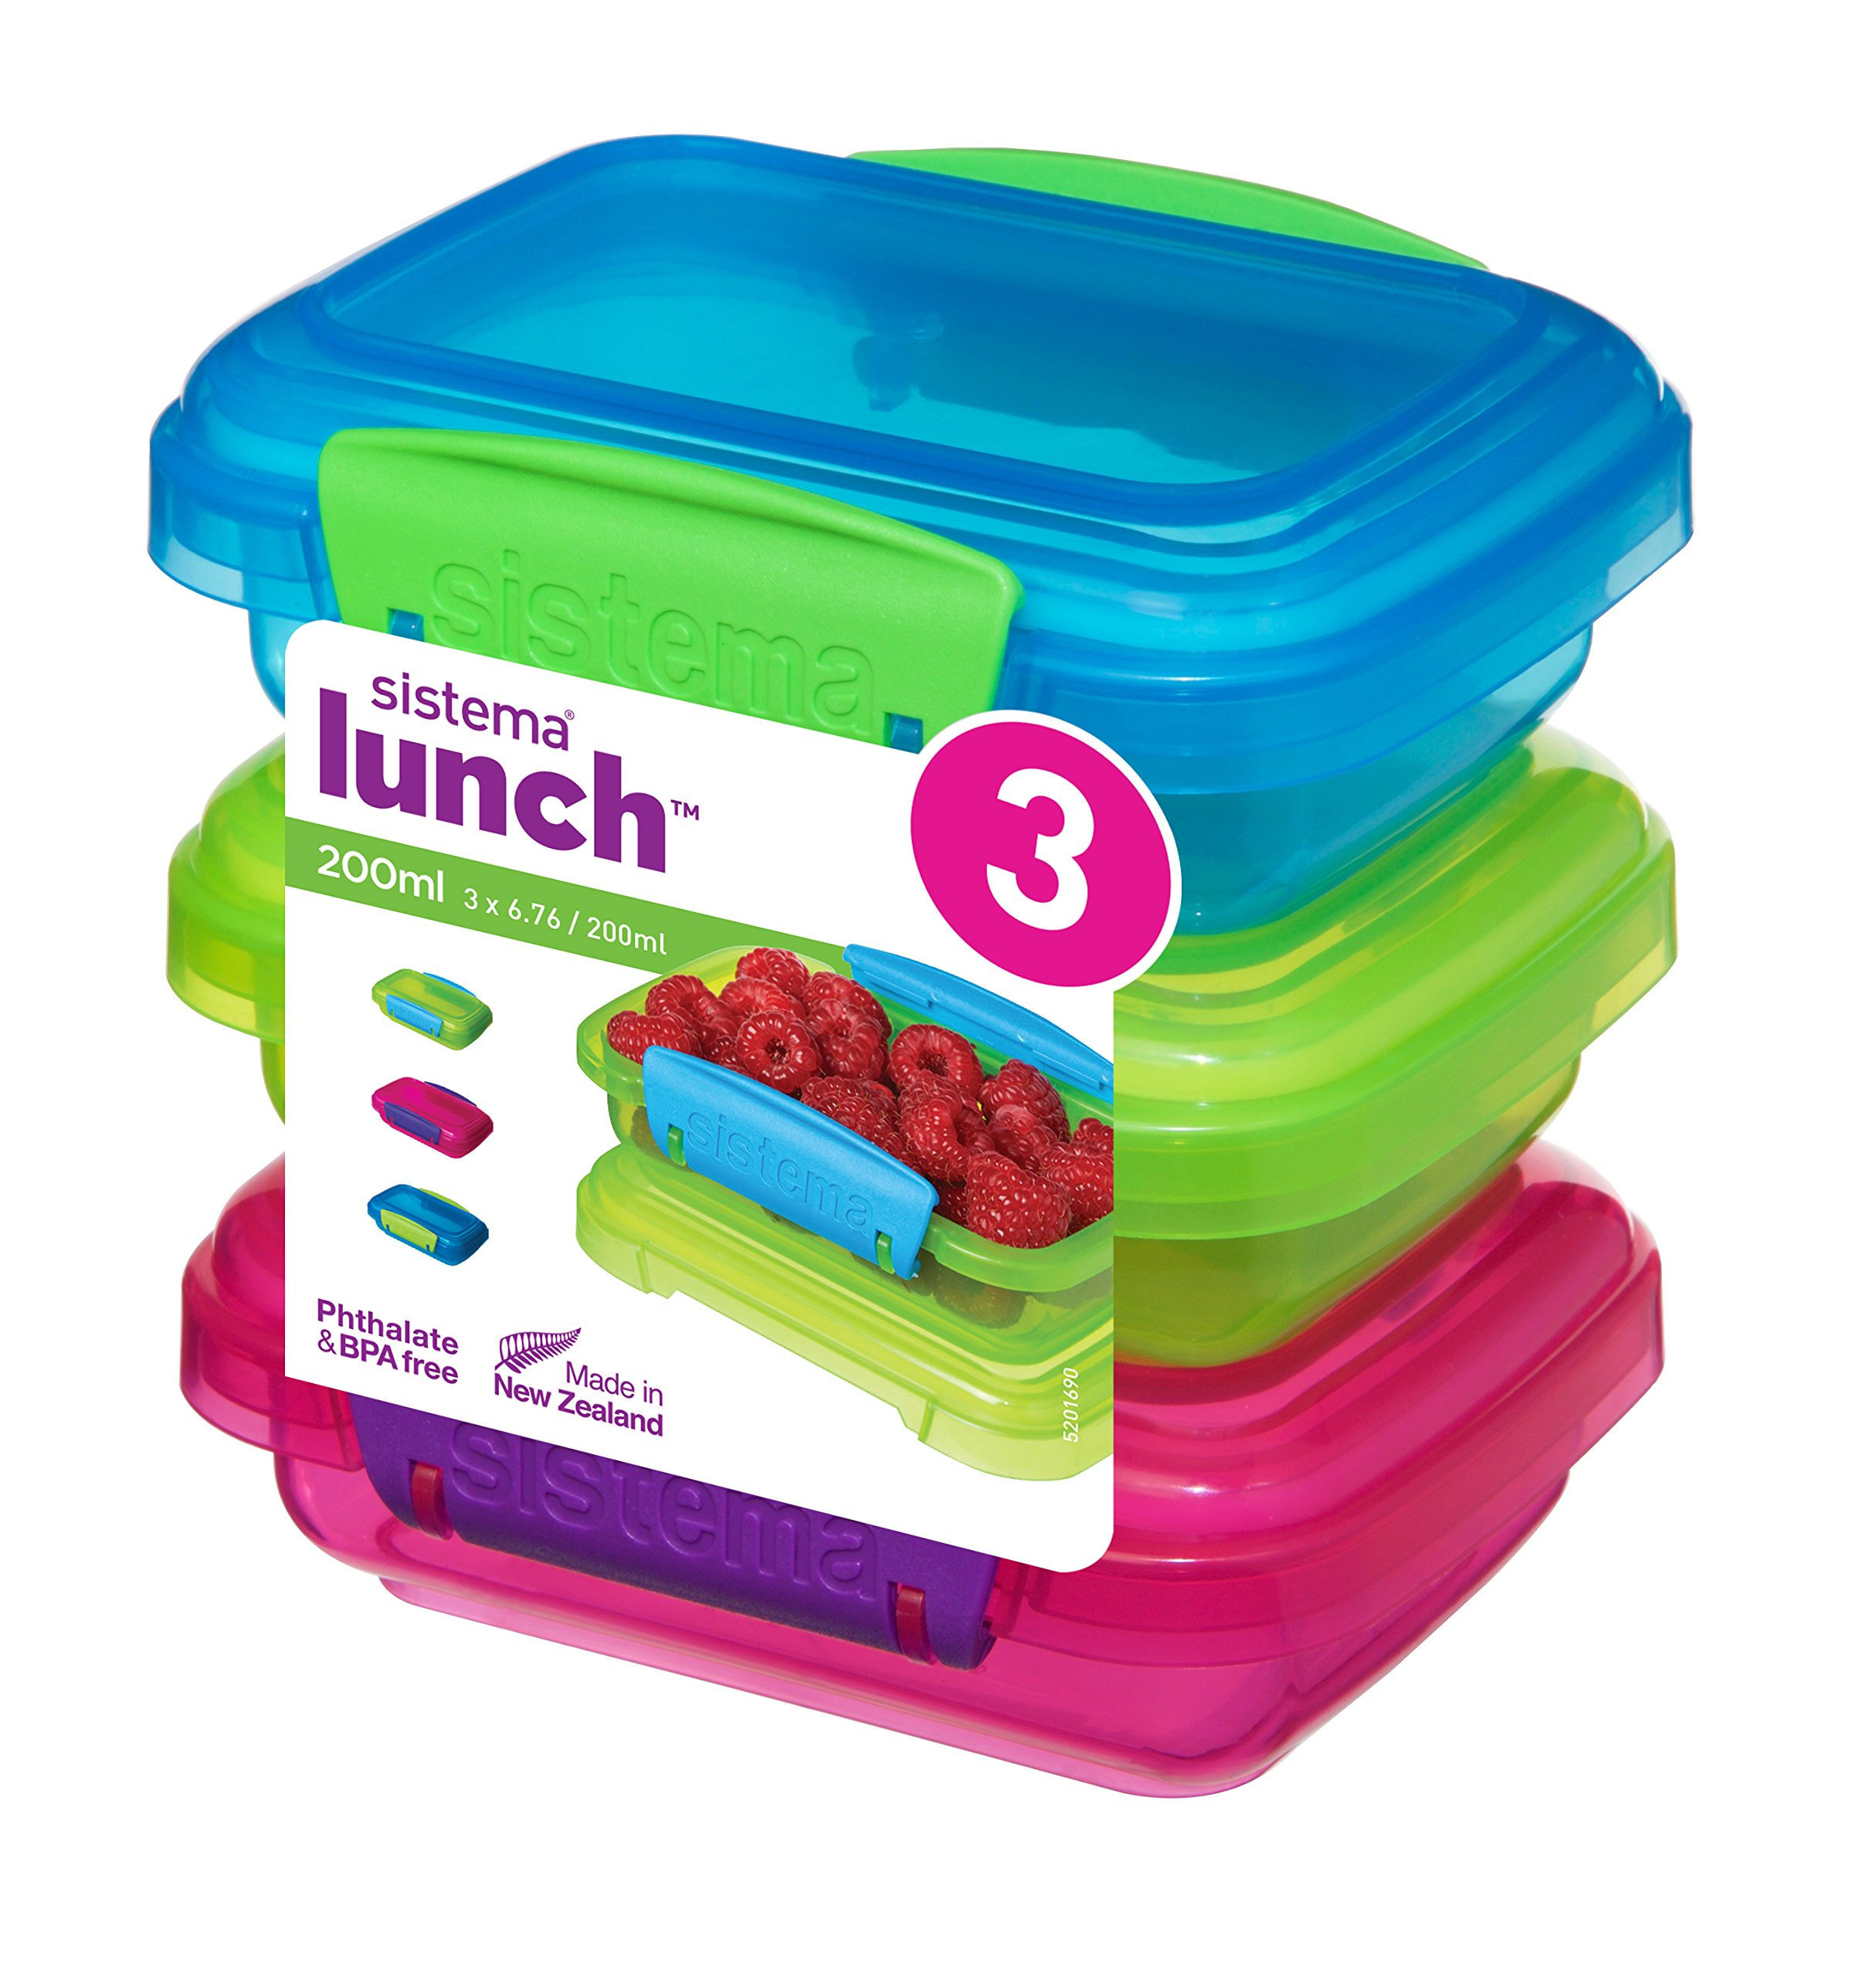 Sistema Lunch Collection Food storage containers, Blue, Green, Pink